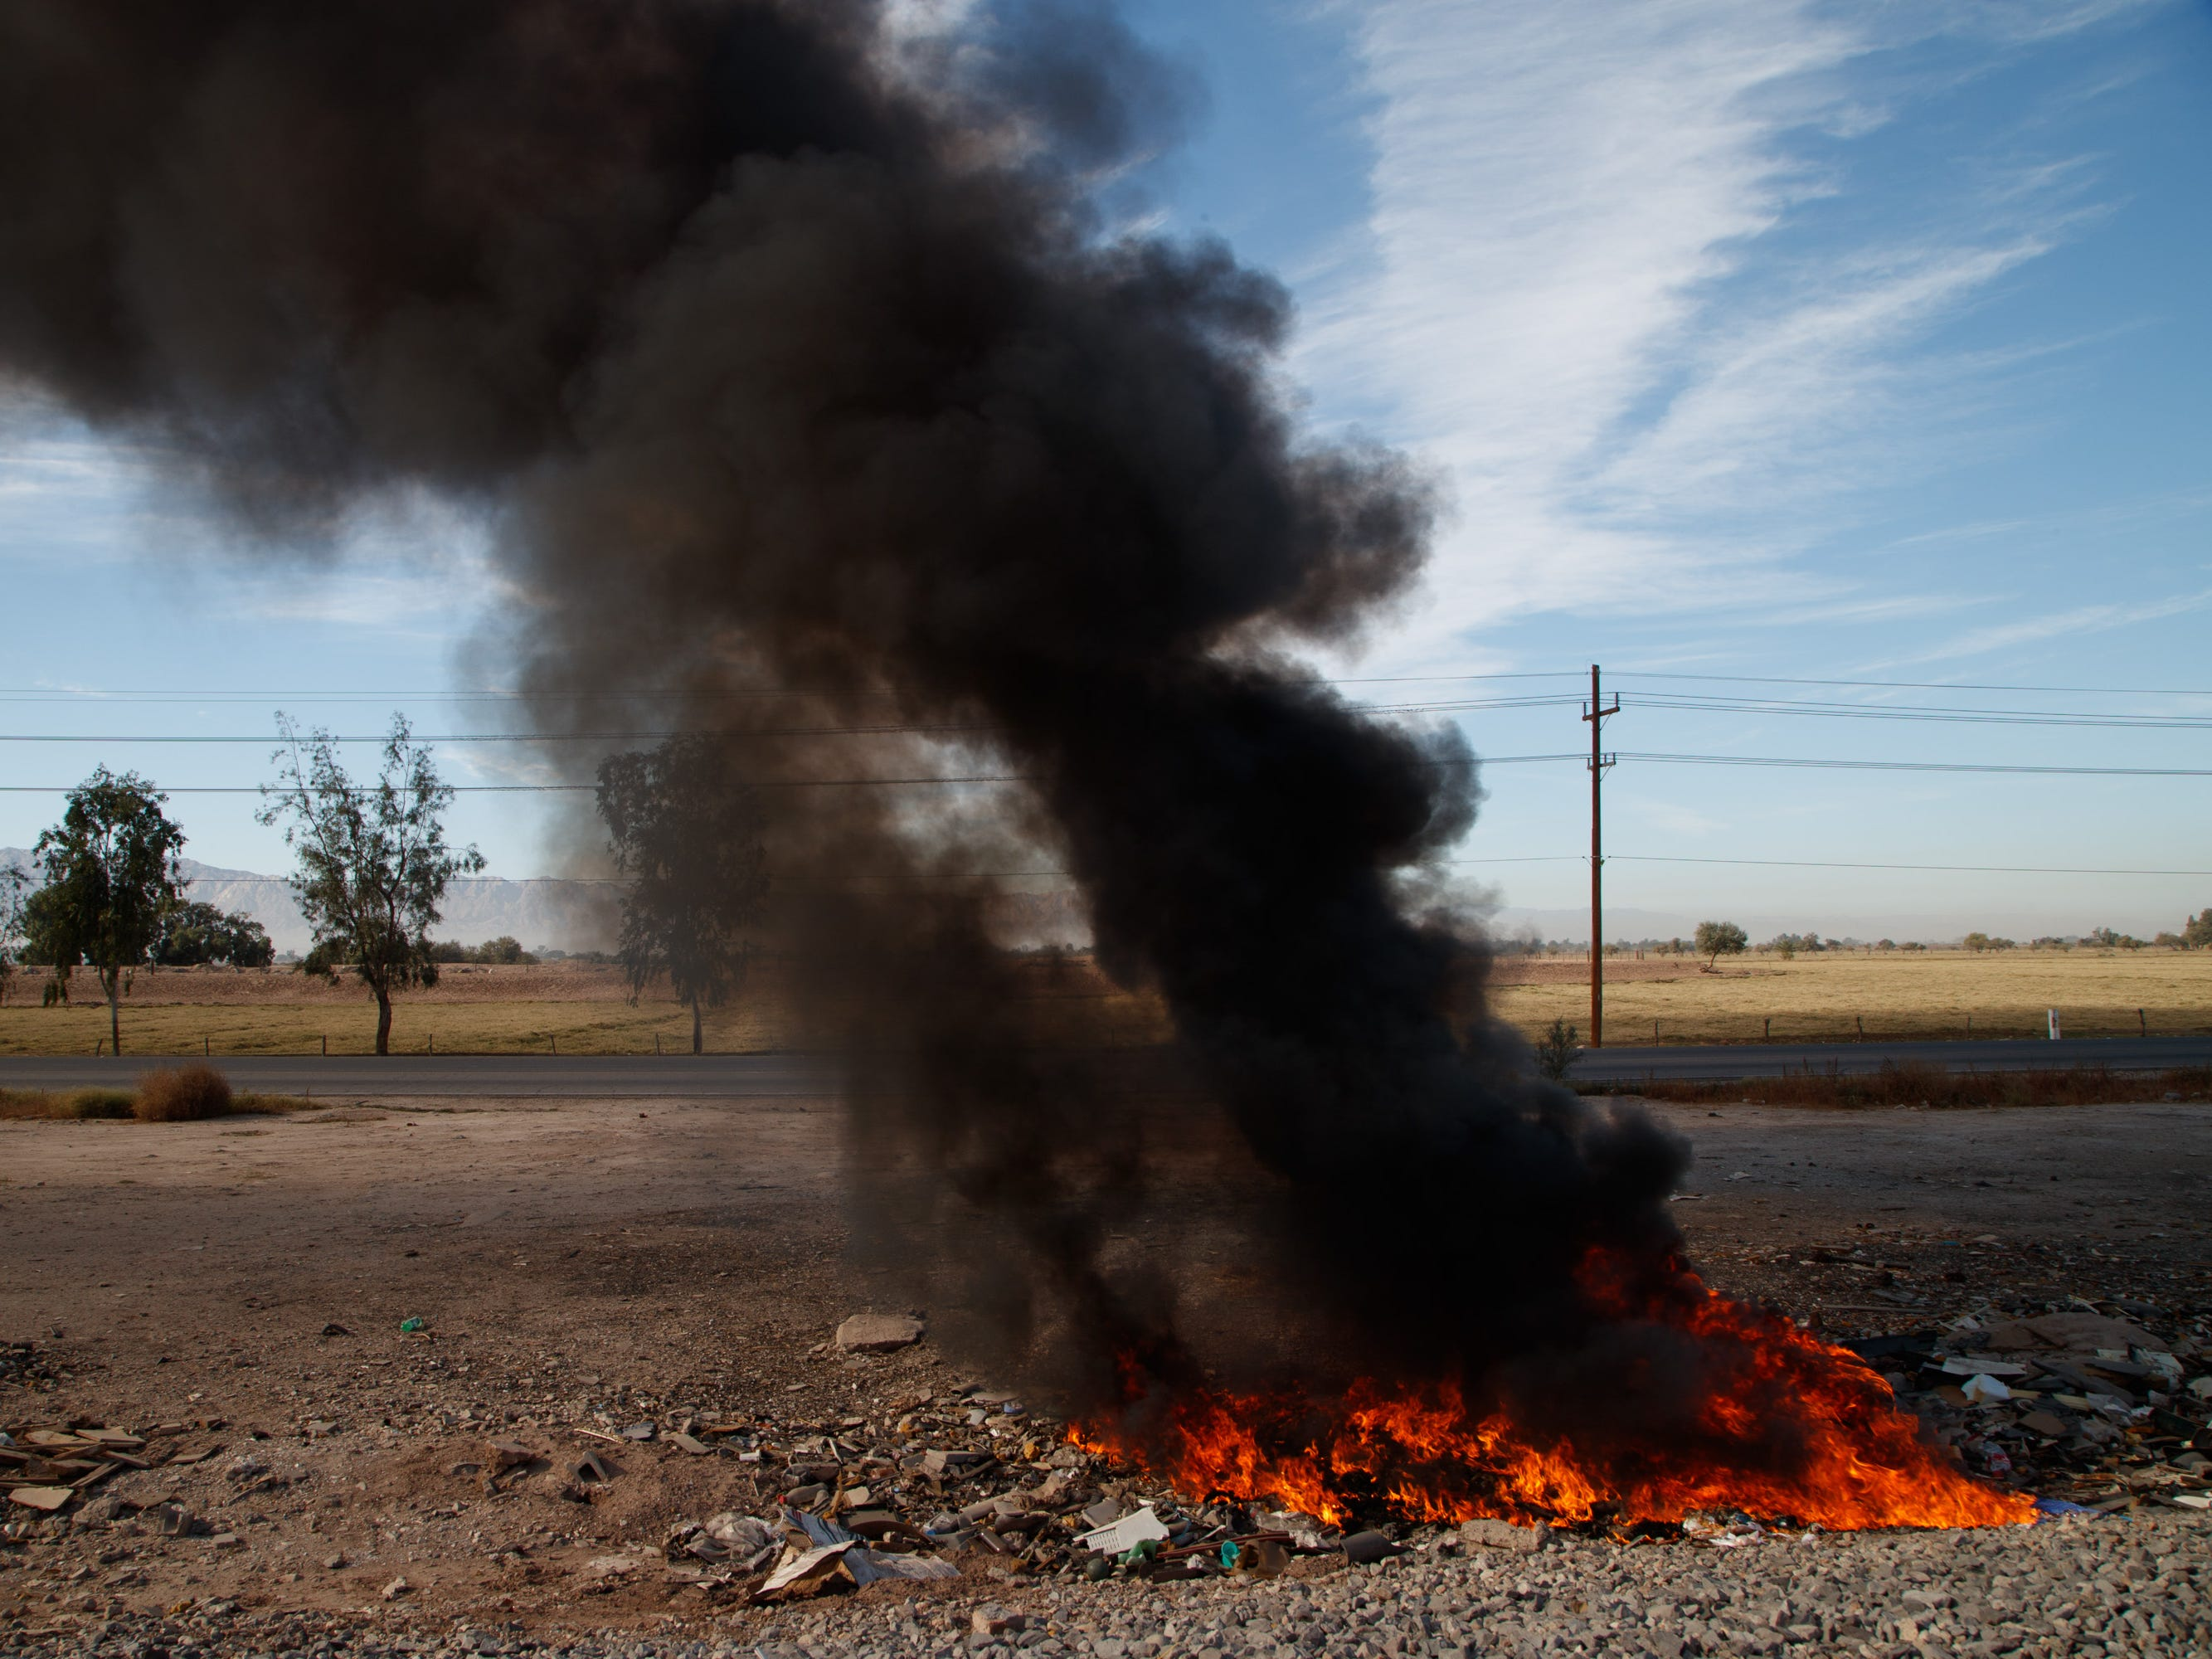 A trash fire releases a thick cloud of black smoke in the countryside on the outskirts of Mexicali, Mexico.